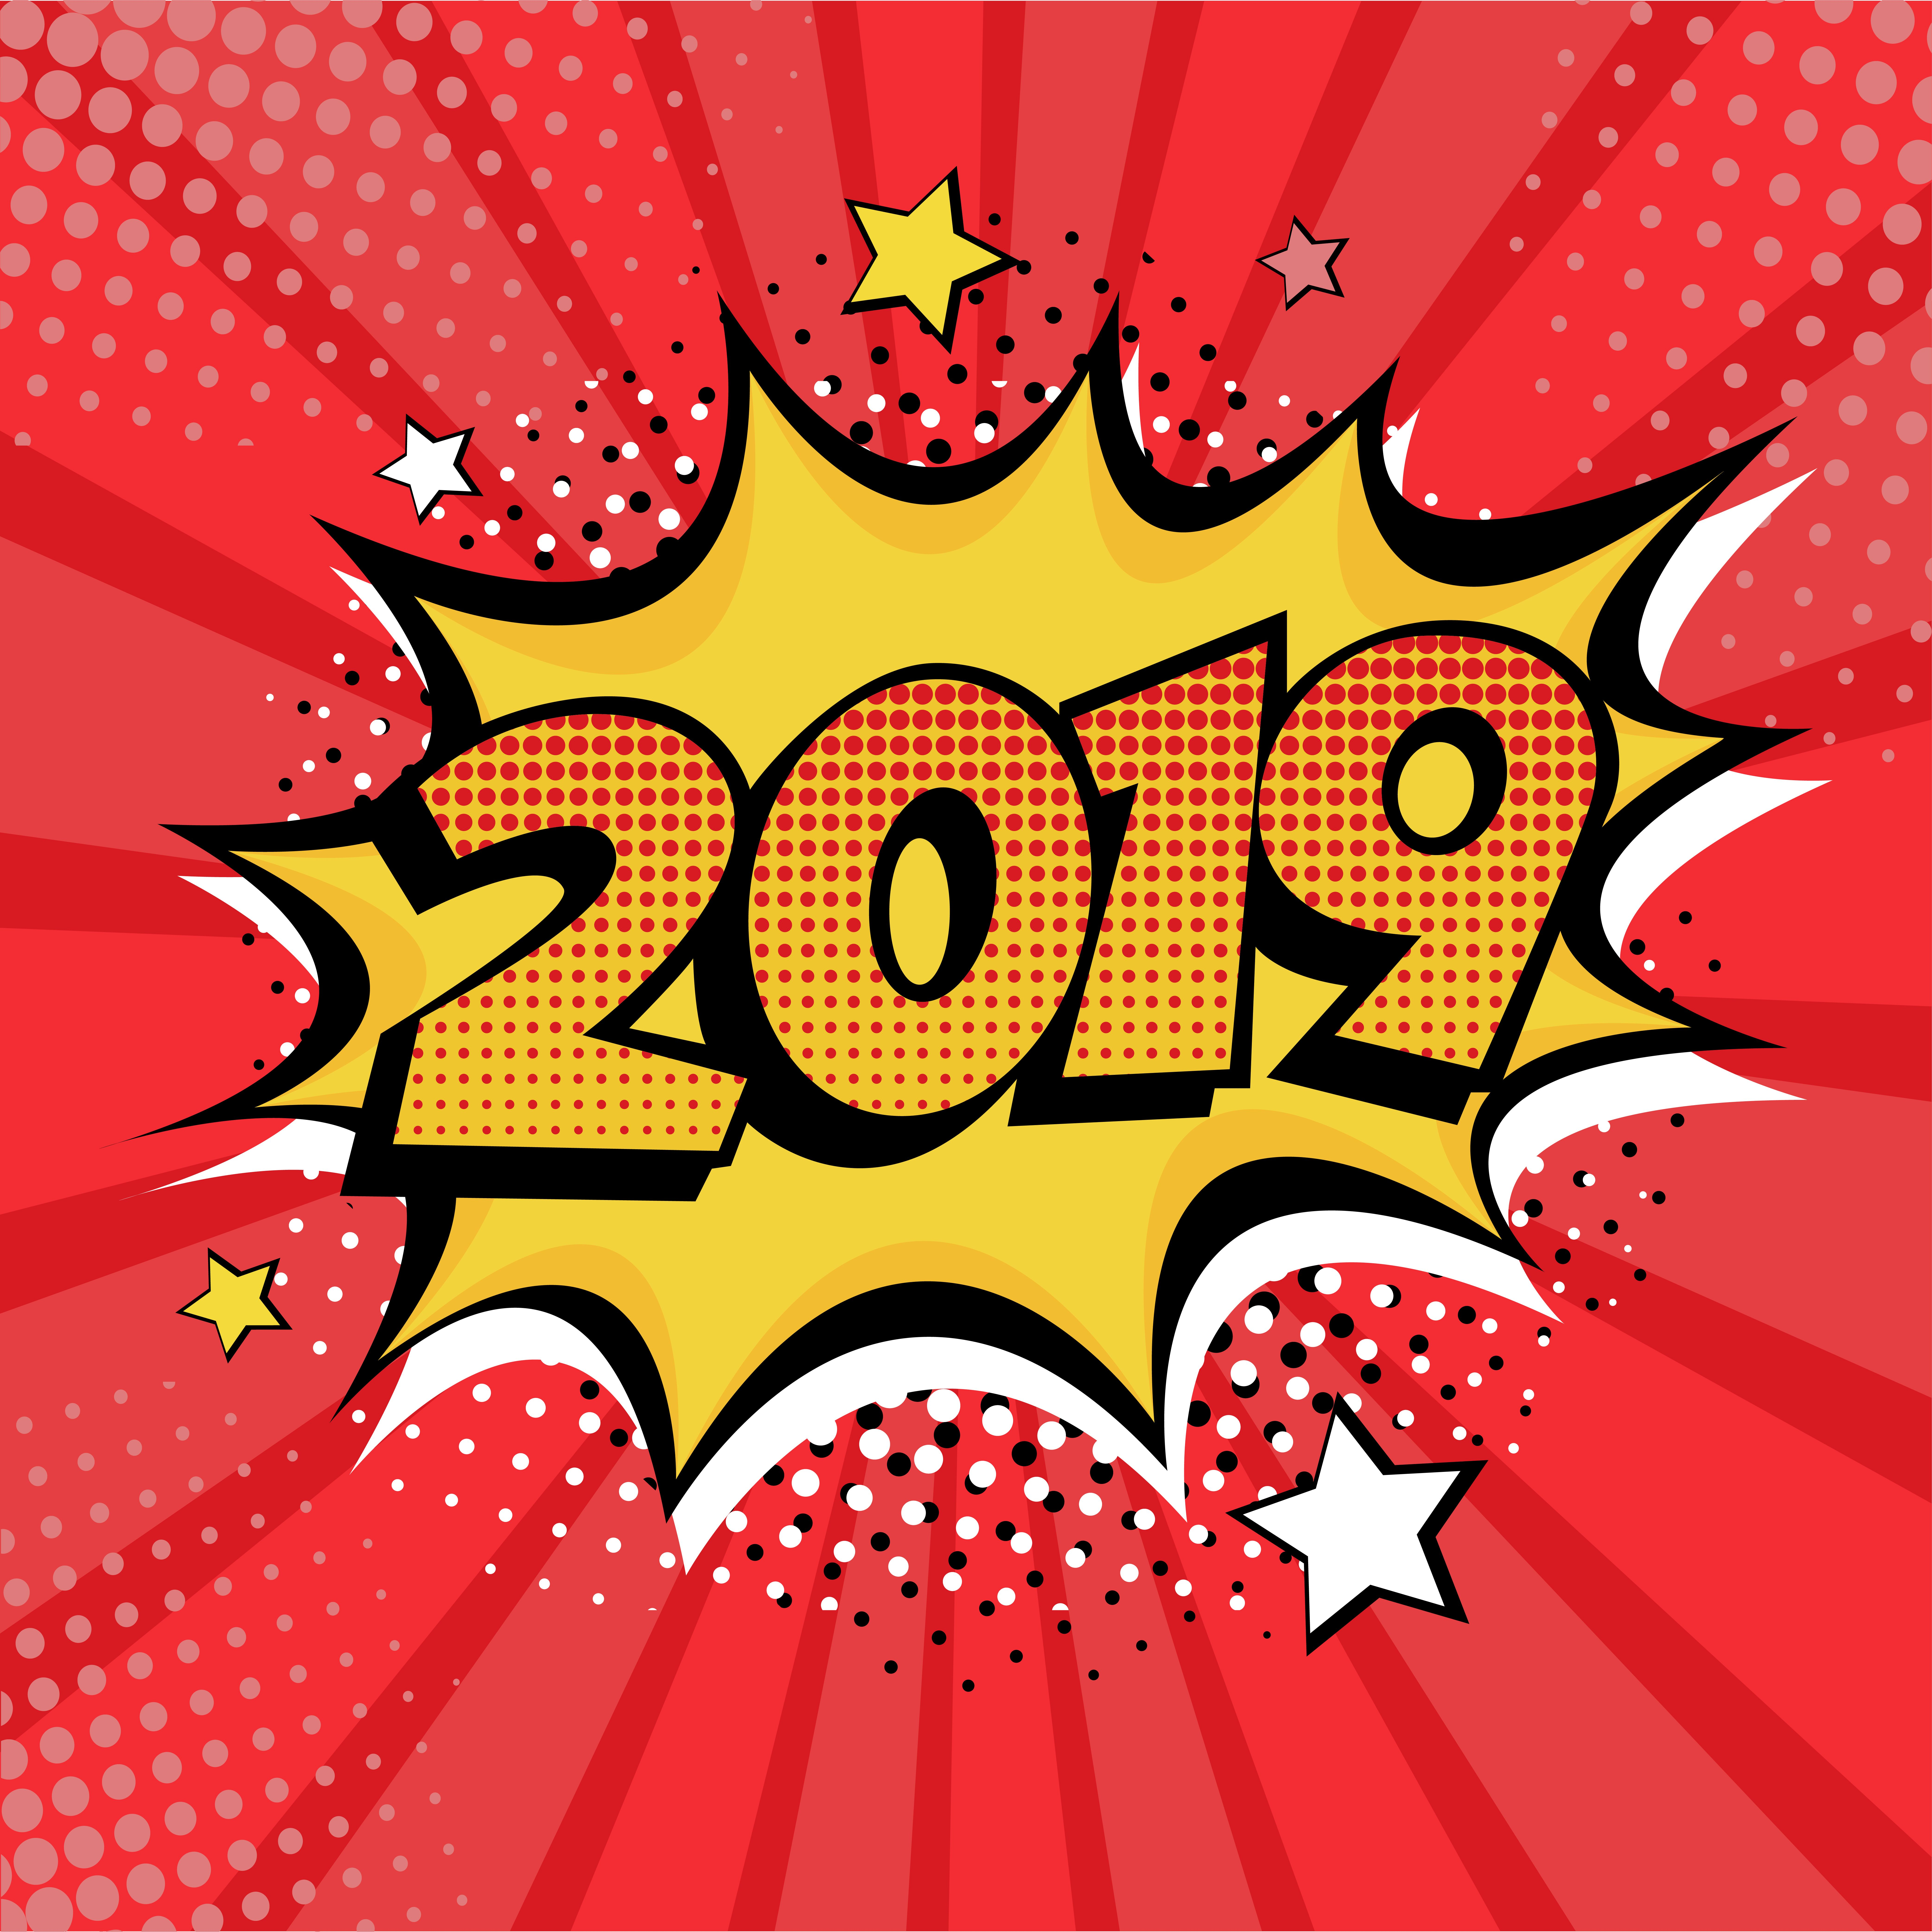 2019 new year comic book style postcard or greeting card